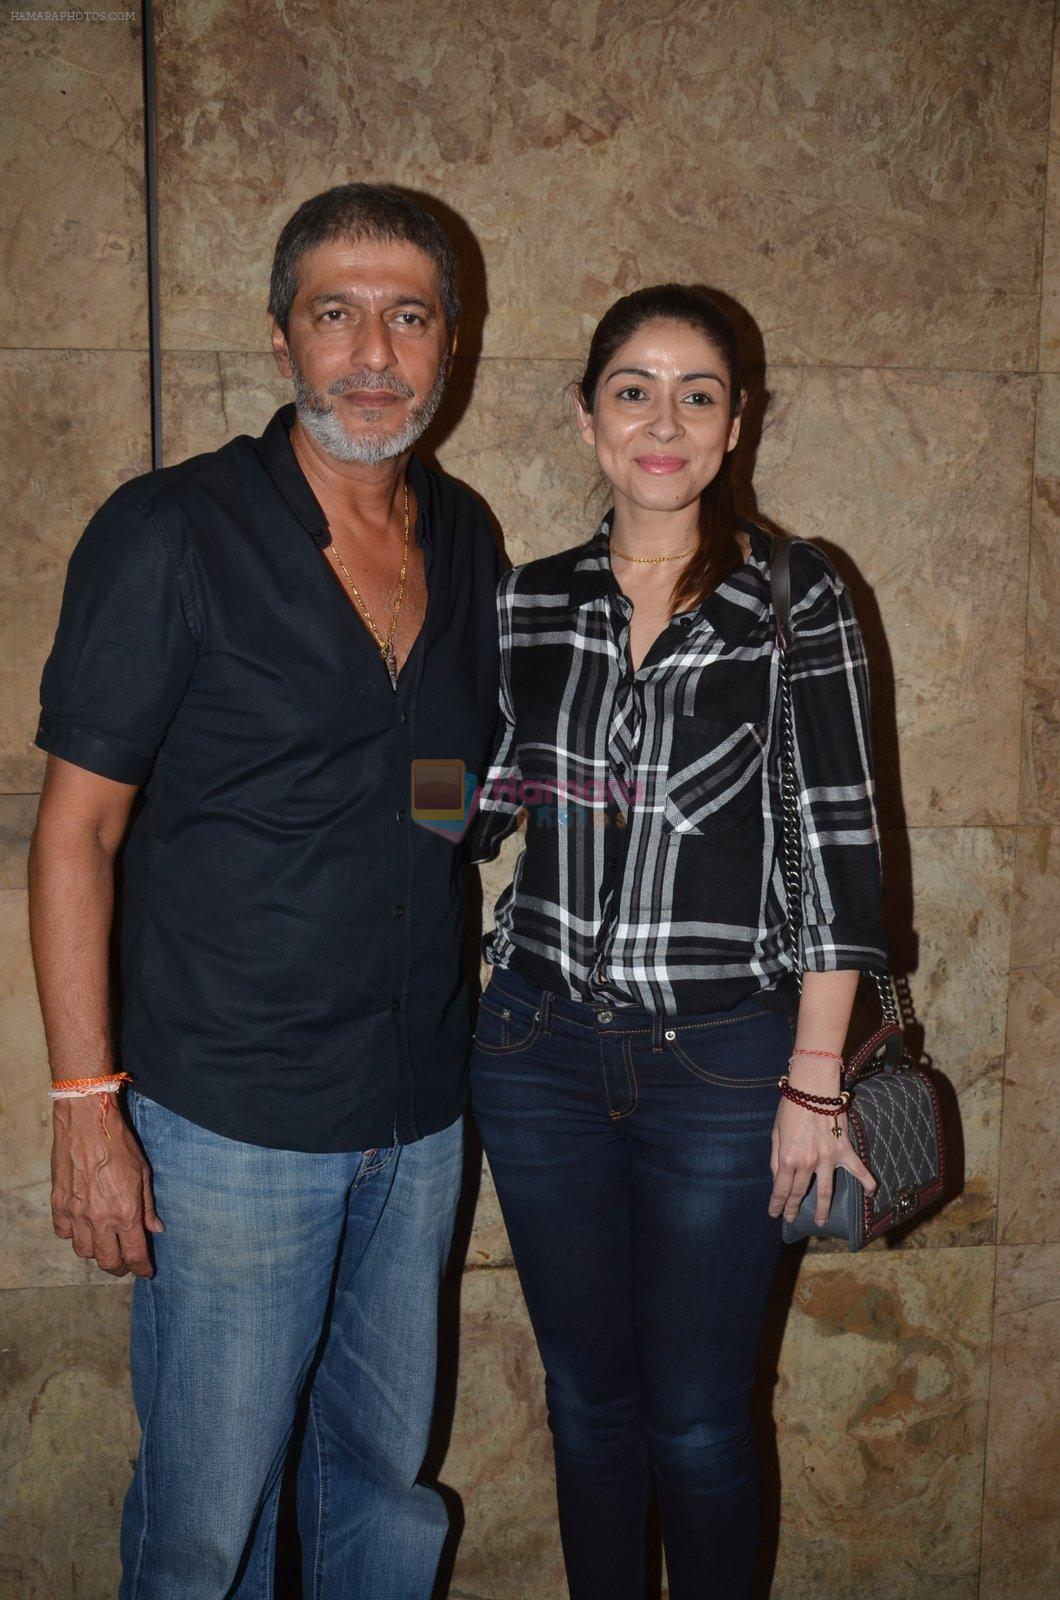 Chunky Pandey at Freaky Ali screening on 7th Sept 2016